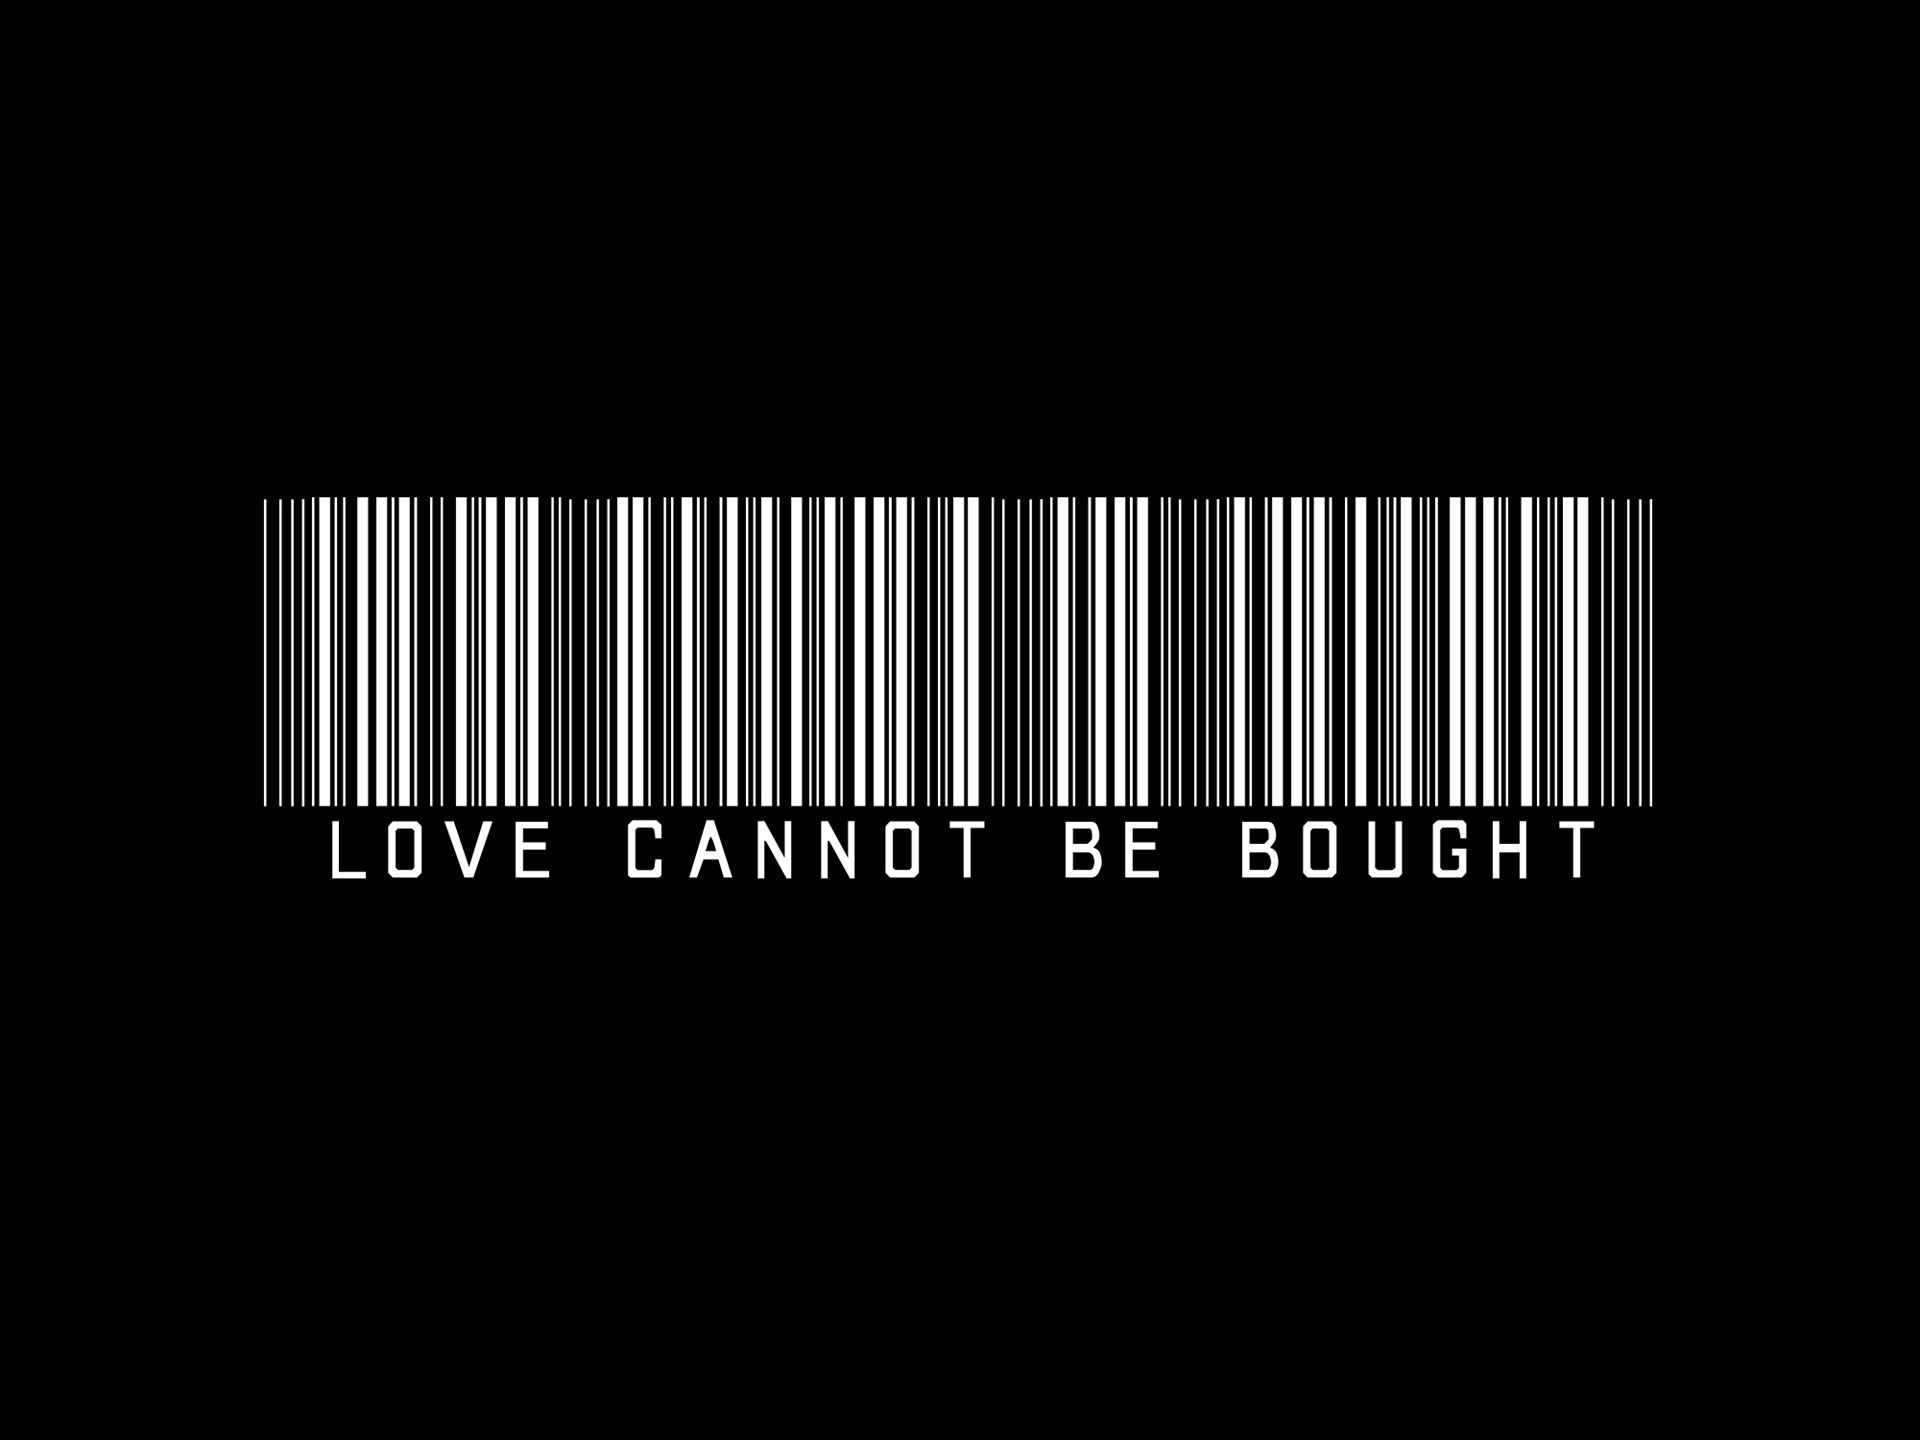 Typography Barcode wallpapers | Typography Barcode stock ...